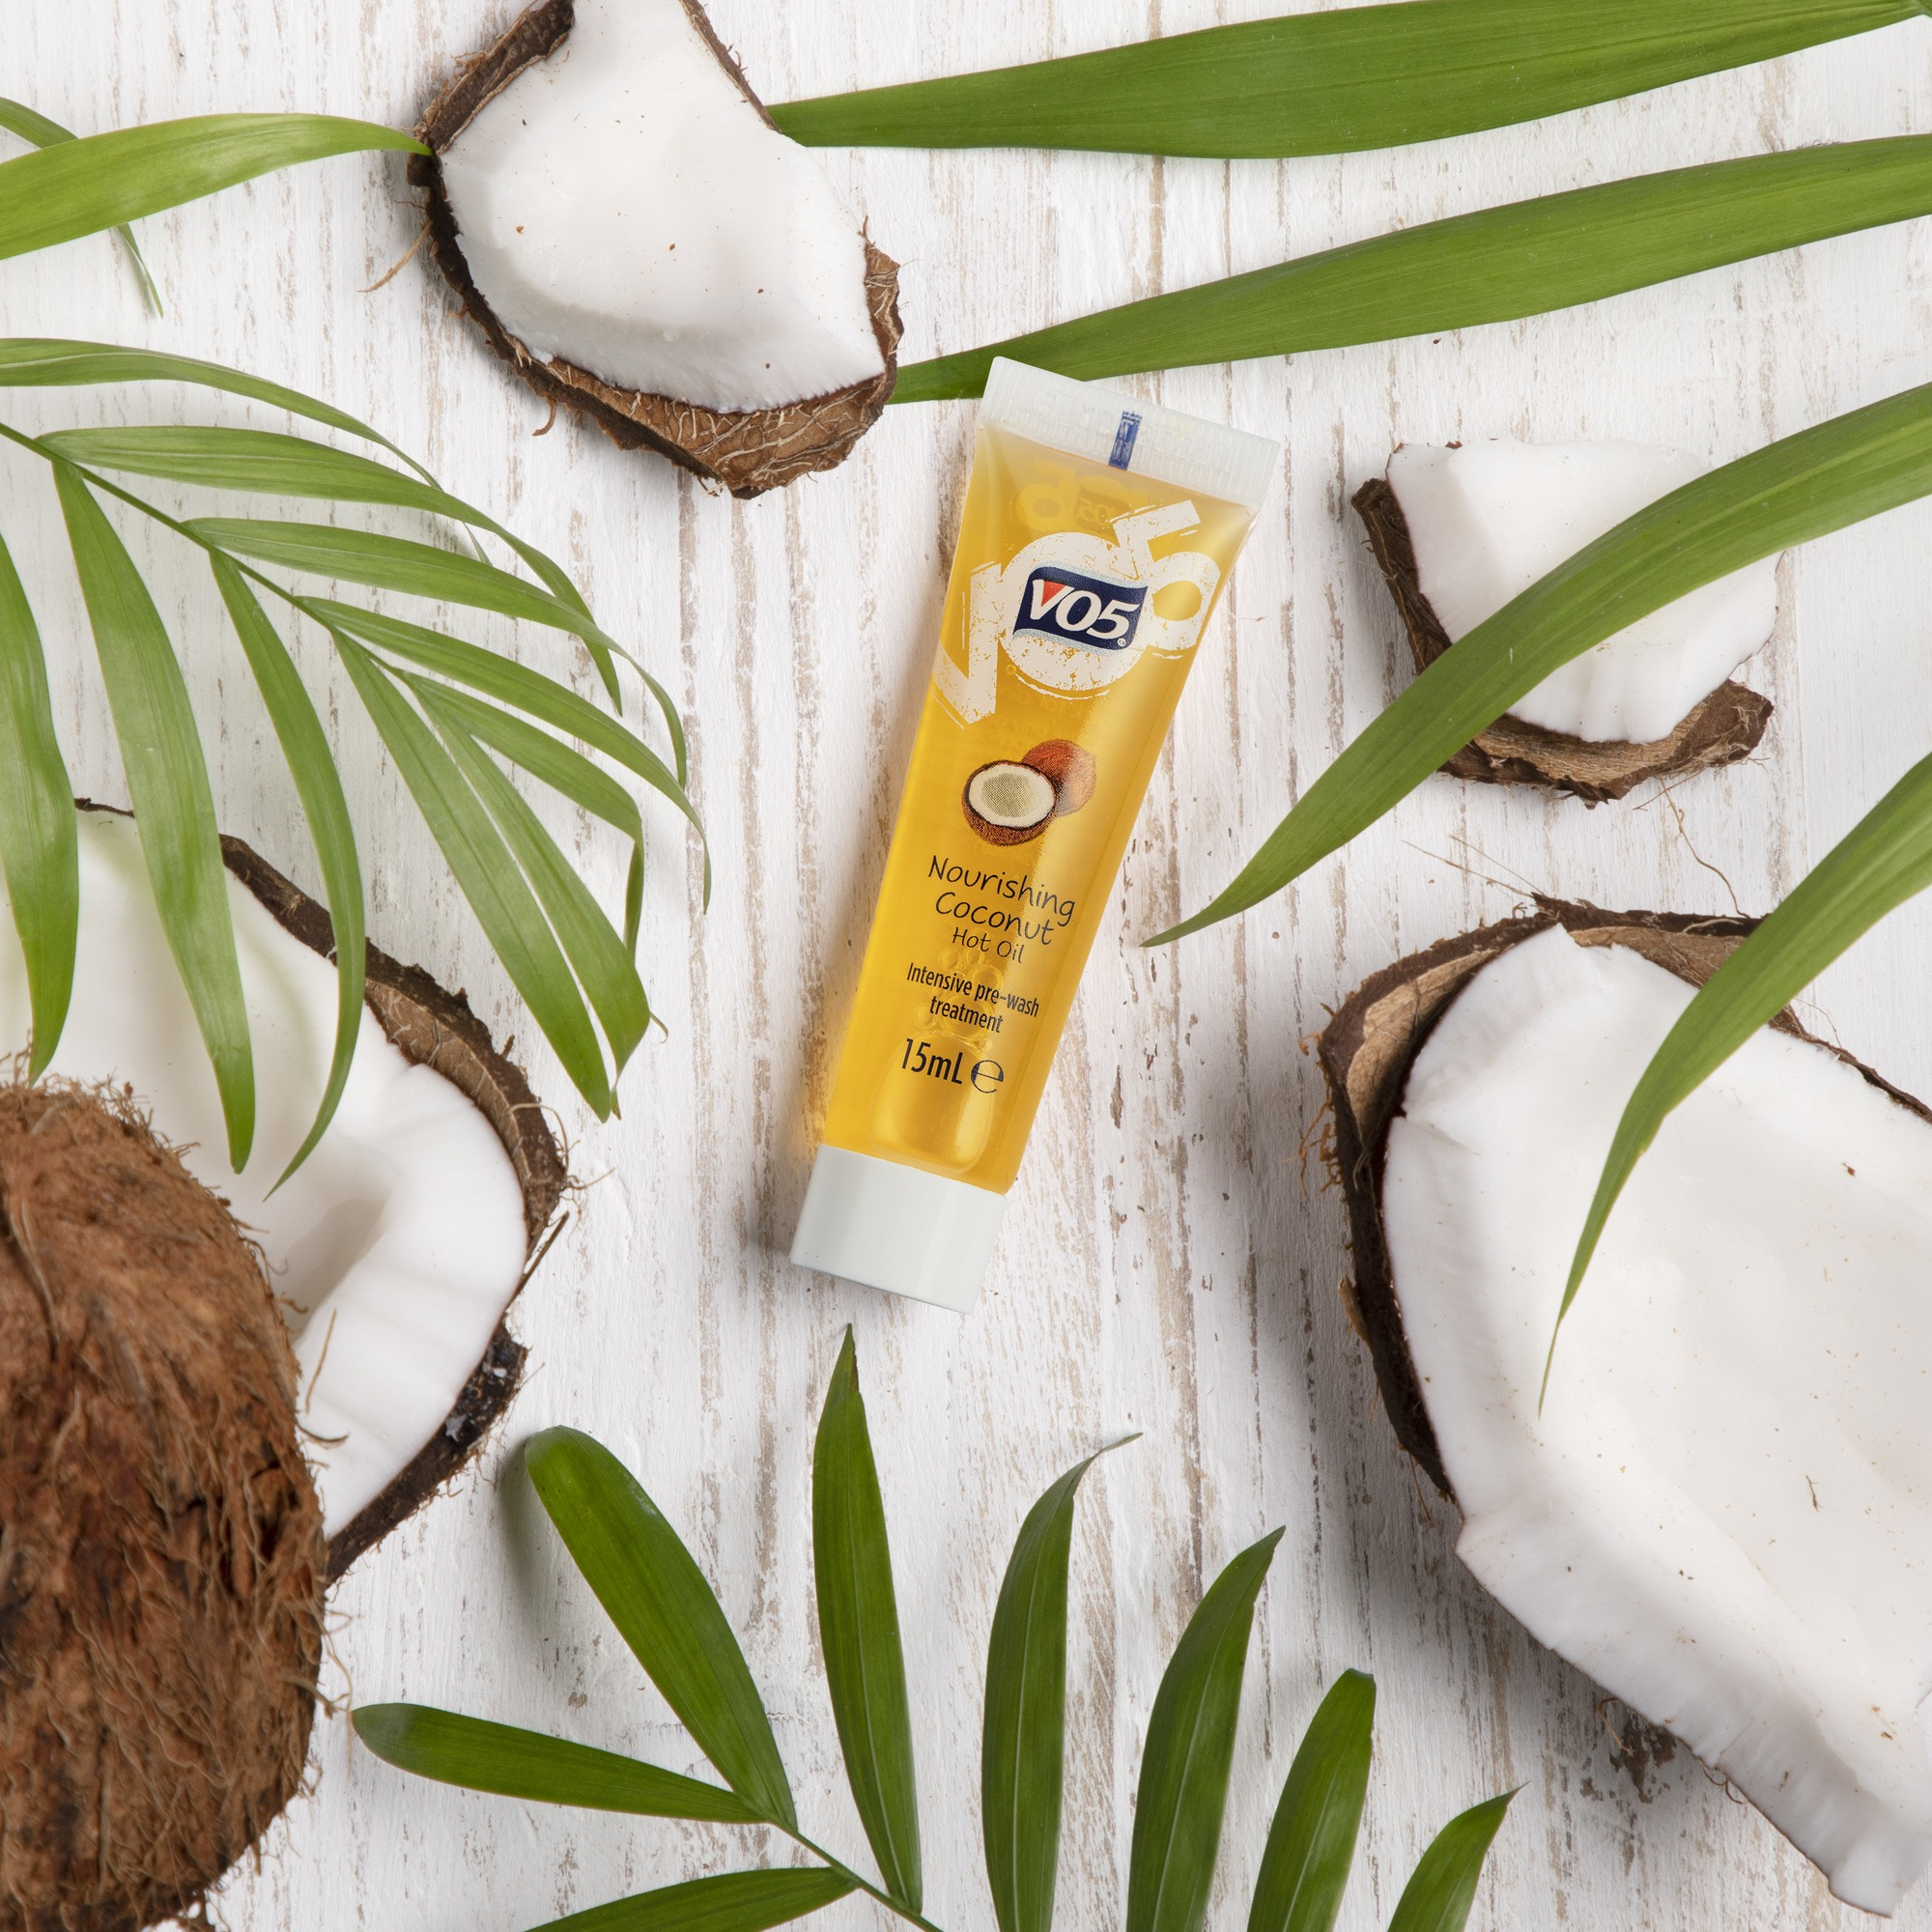 VO5 hot oil: Flat lay of the new VO5 Nourishing Coconut Oil on a white wooden background decorated with coconuts and palm tree leaves